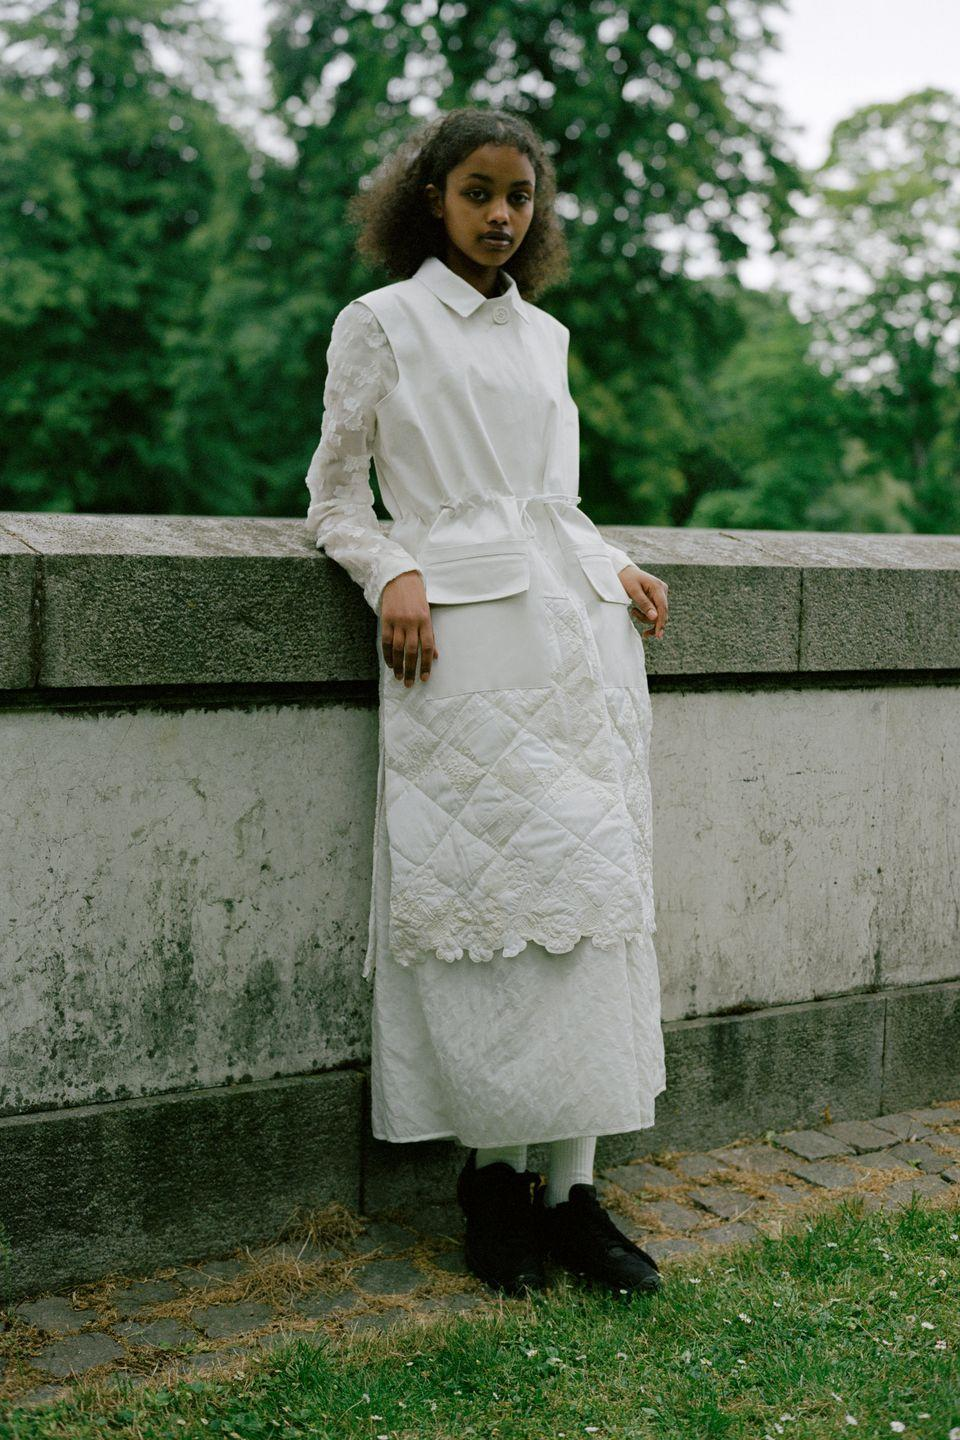 """<p>""""I want the dresses and everything else to be worn in the streets, not just during special occasions,"""" said designer Cecilie Bahnsen to <em>Vogue</em> on her resort 2021 collection. For this release, Bahnsen used 100 percent upcycled fabrics from her previous collections to create everyday peplum tops, quilted skirts, and her iconic puff sleeve and dress silhouettes. </p>"""